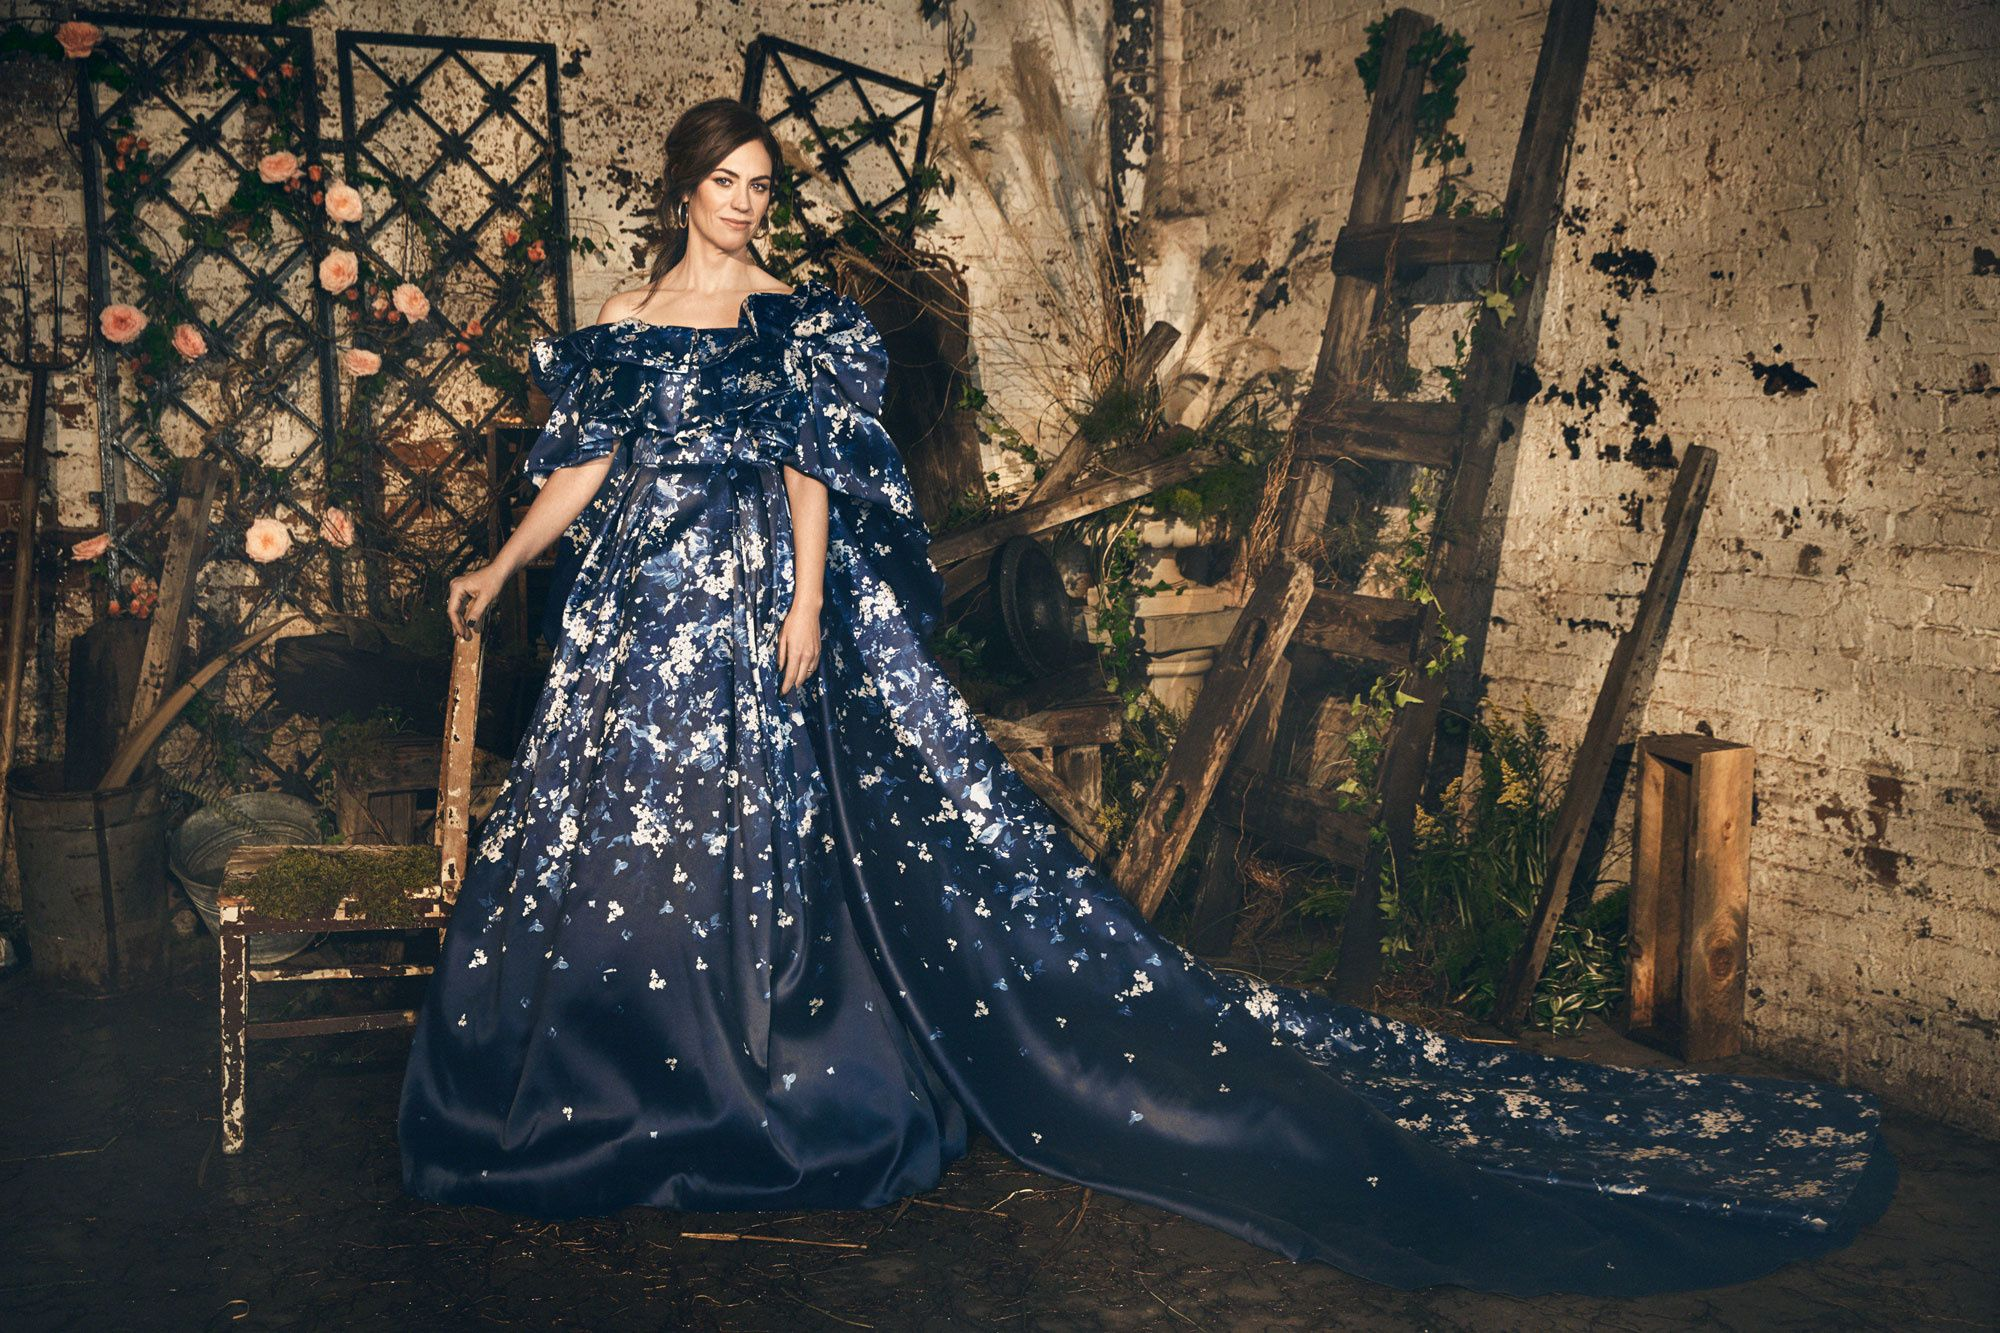 Maggie Siff in a royal blue gown embellished with a floral pattern.